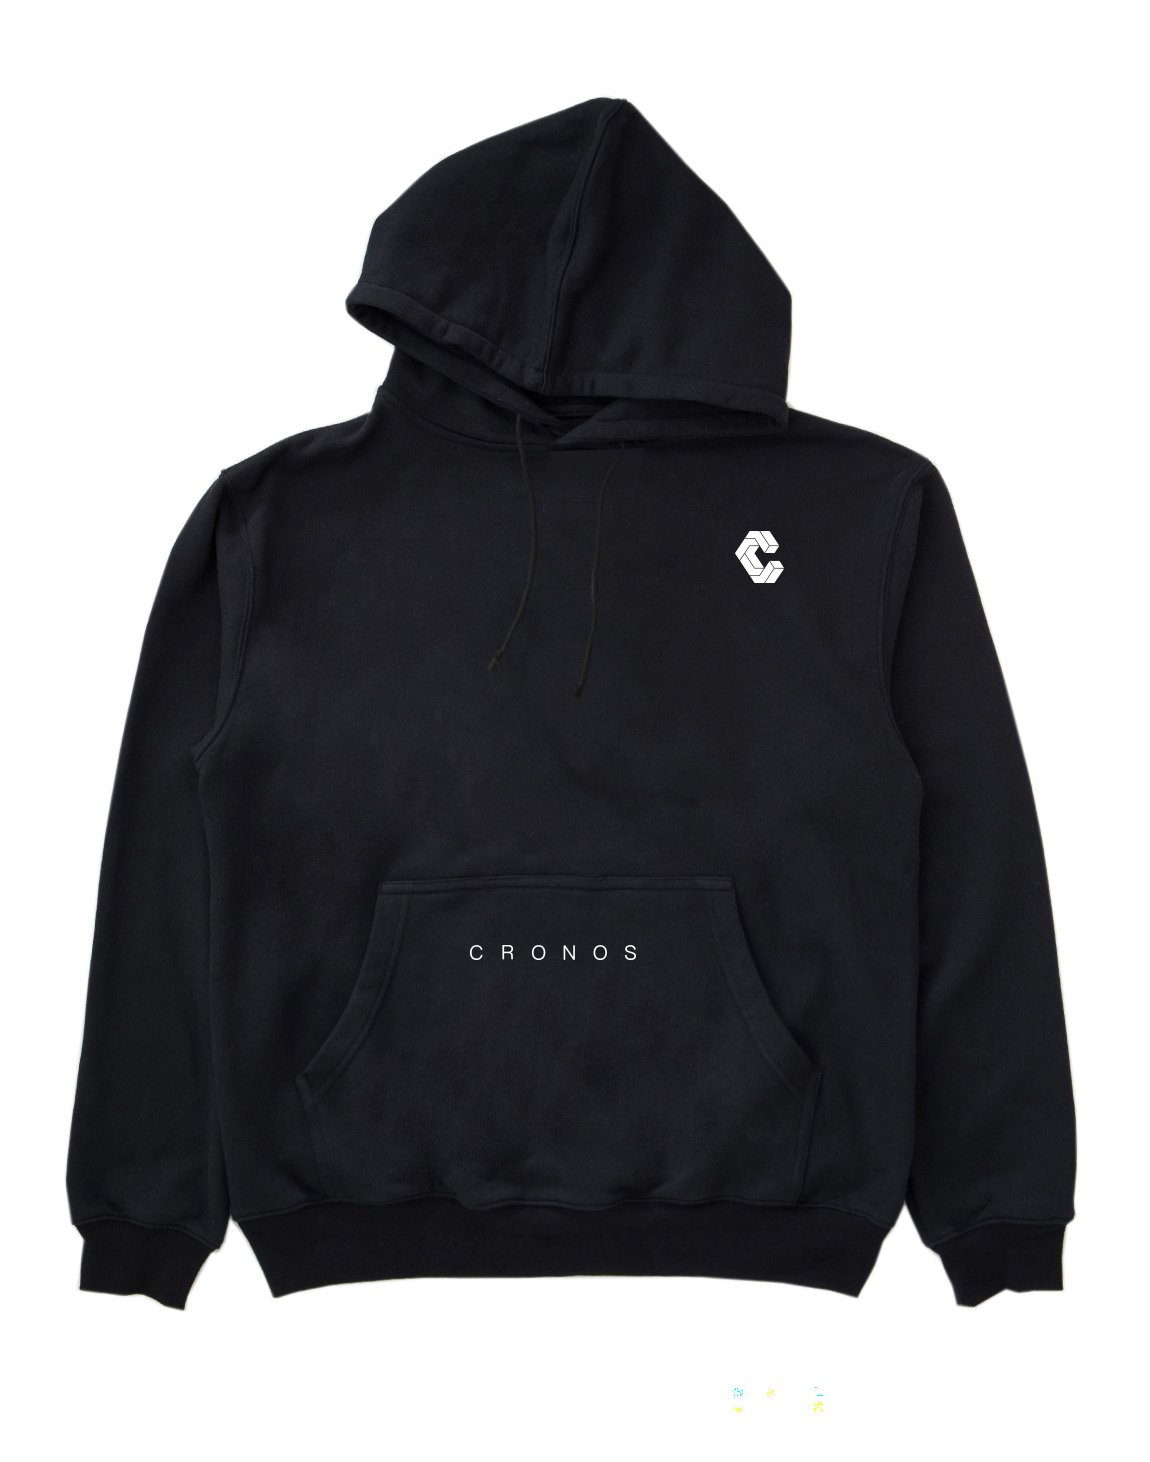 <img class='new_mark_img1' src='https://img.shop-pro.jp/img/new/icons1.gif' style='border:none;display:inline;margin:0px;padding:0px;width:auto;' />CRONOS PULL OVER PARKA 【BLACK】